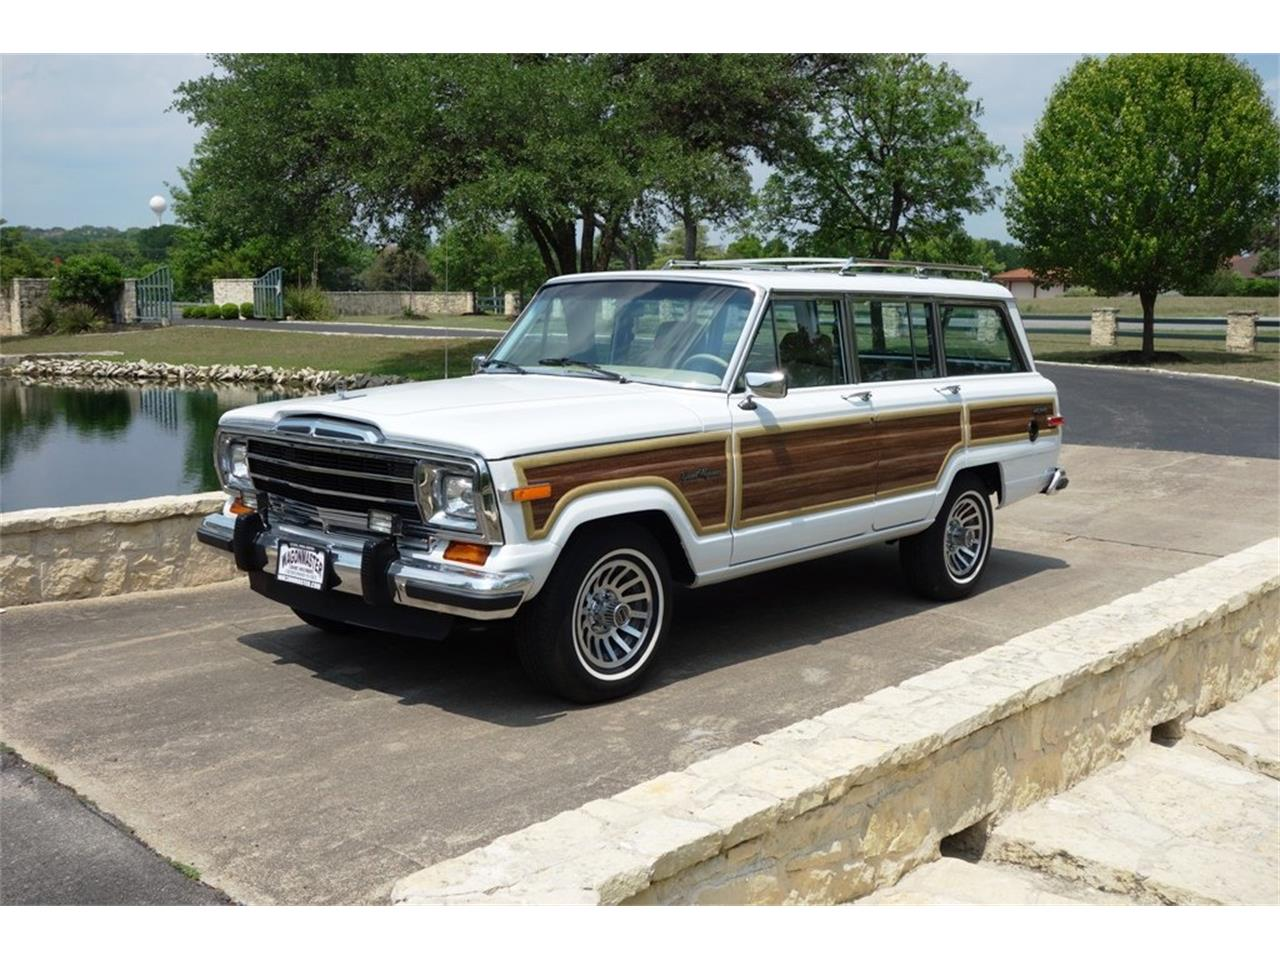 Jeep Grand Wagoneer For Sale >> 1989 Jeep Grand Wagoneer For Sale Classiccars Com Cc 1183402